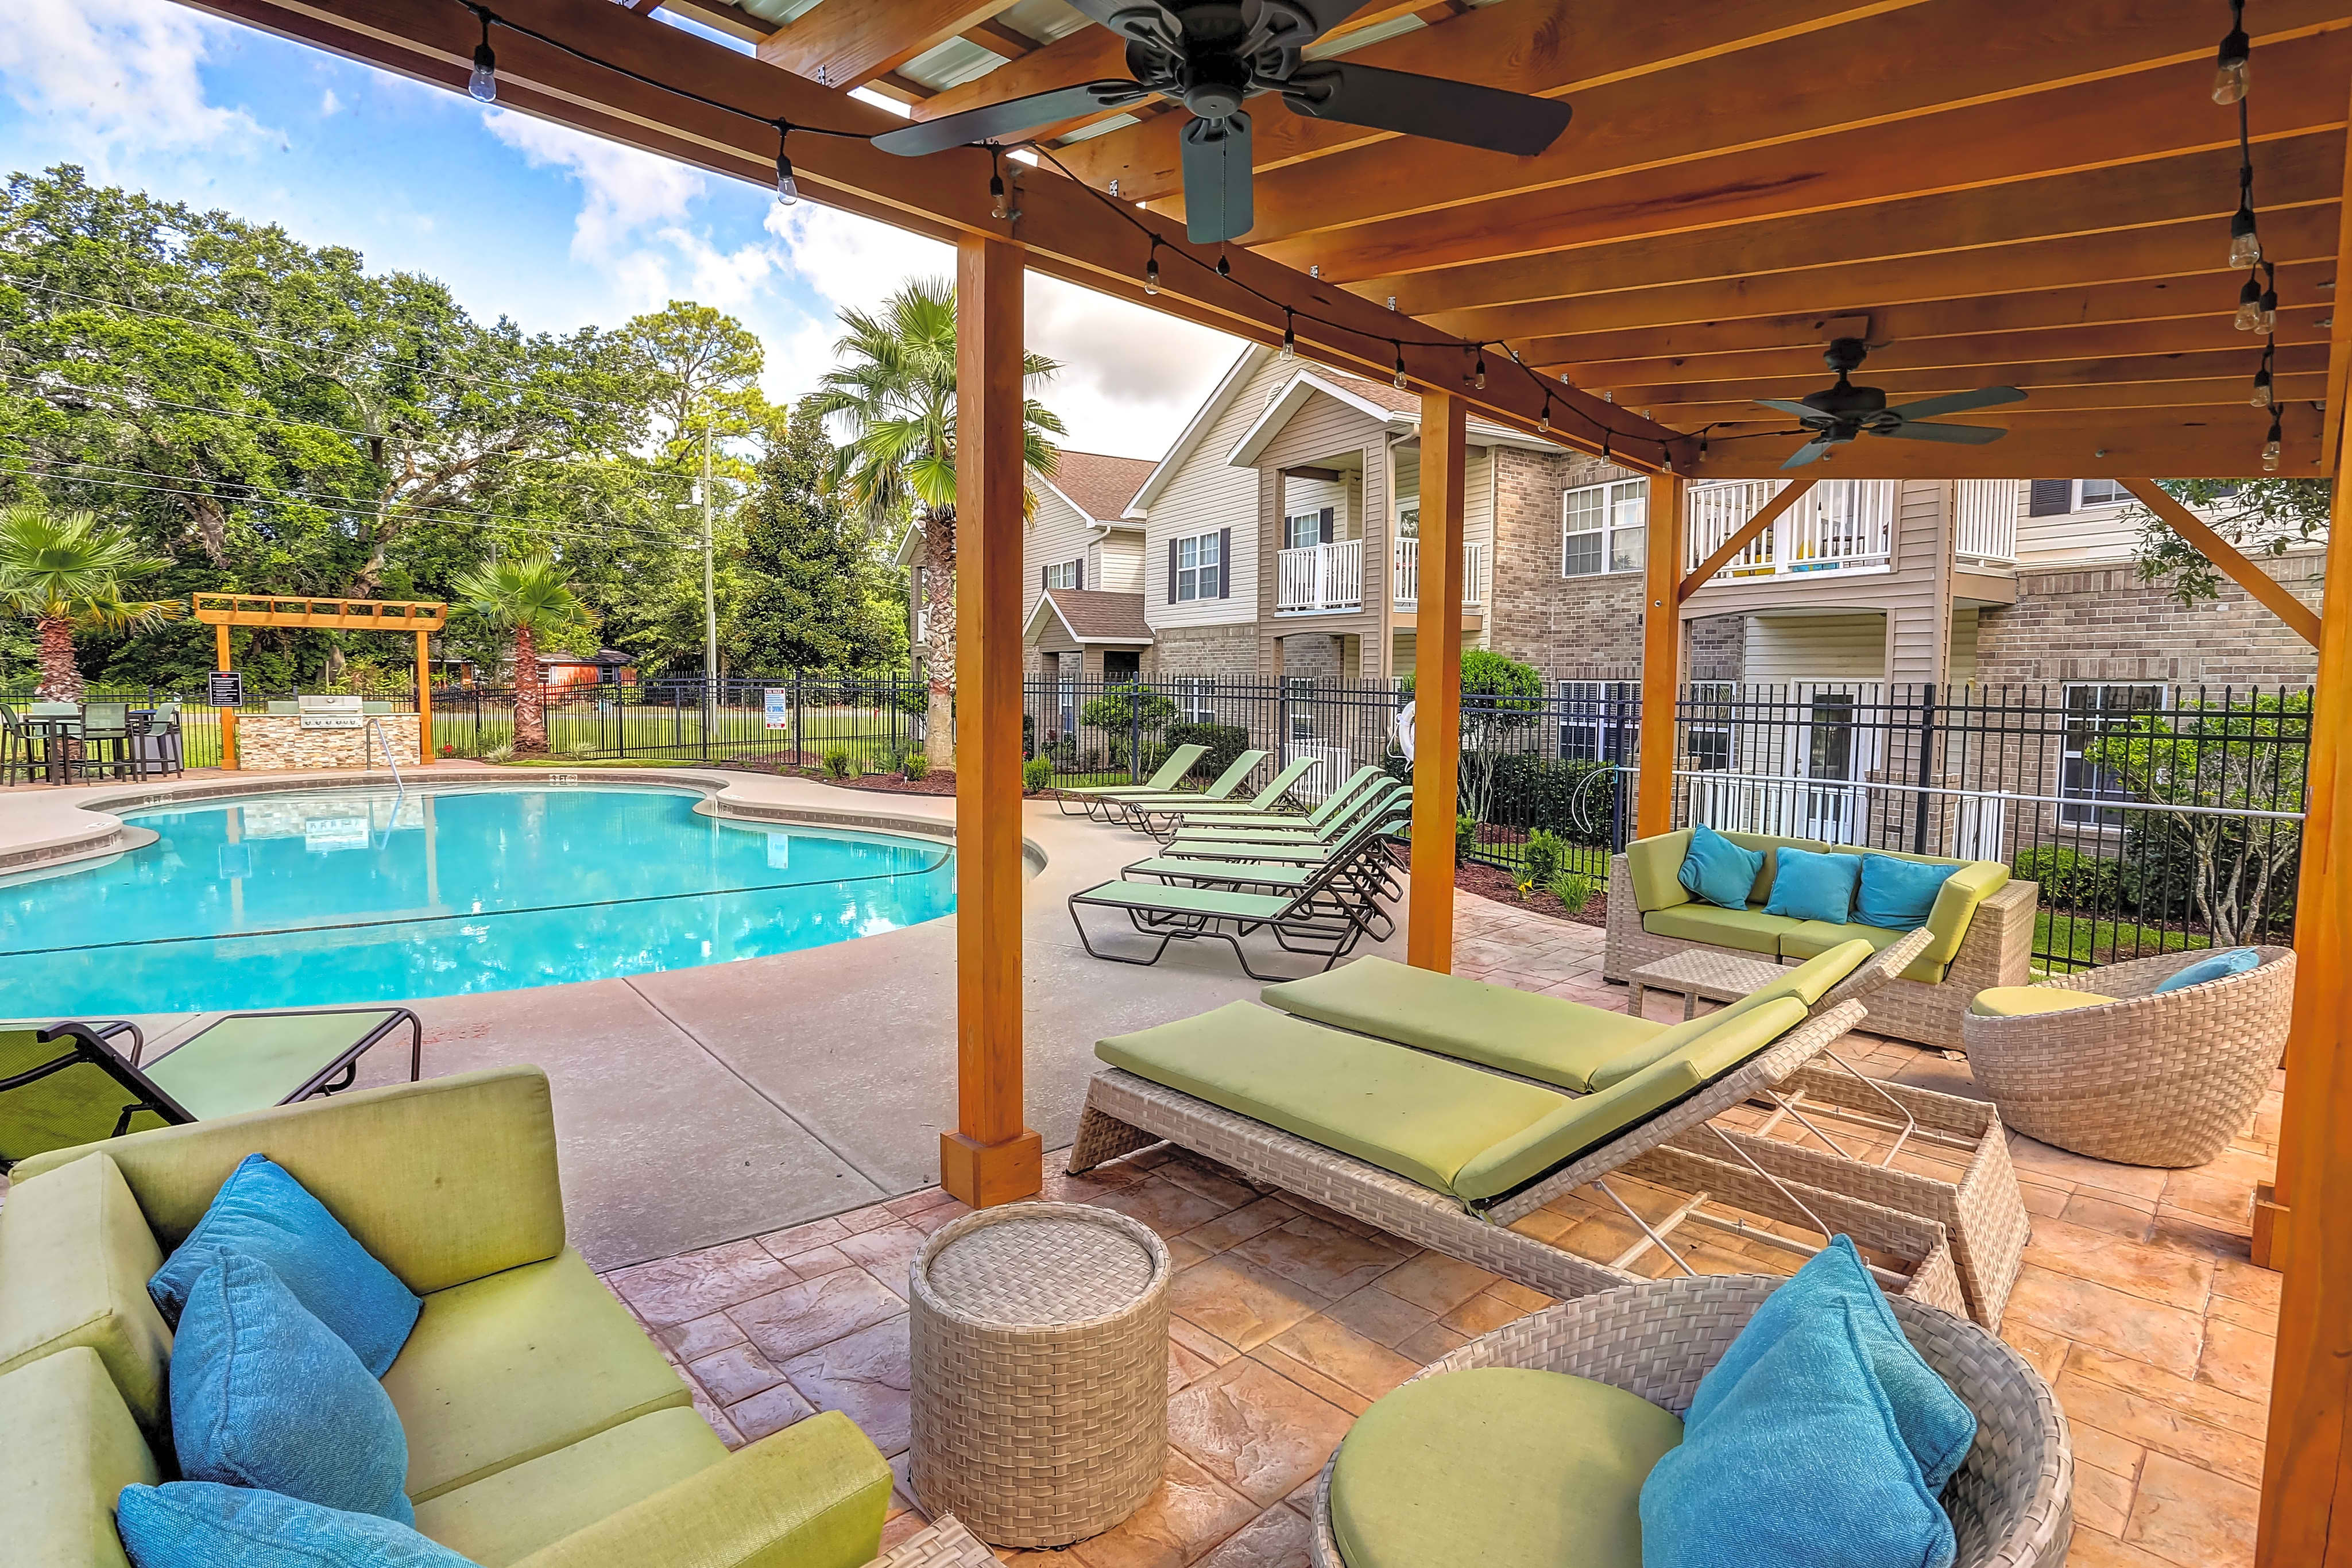 Apartments Near UWF Majestic Oaks for University of West Florida Students in Pensacola, FL